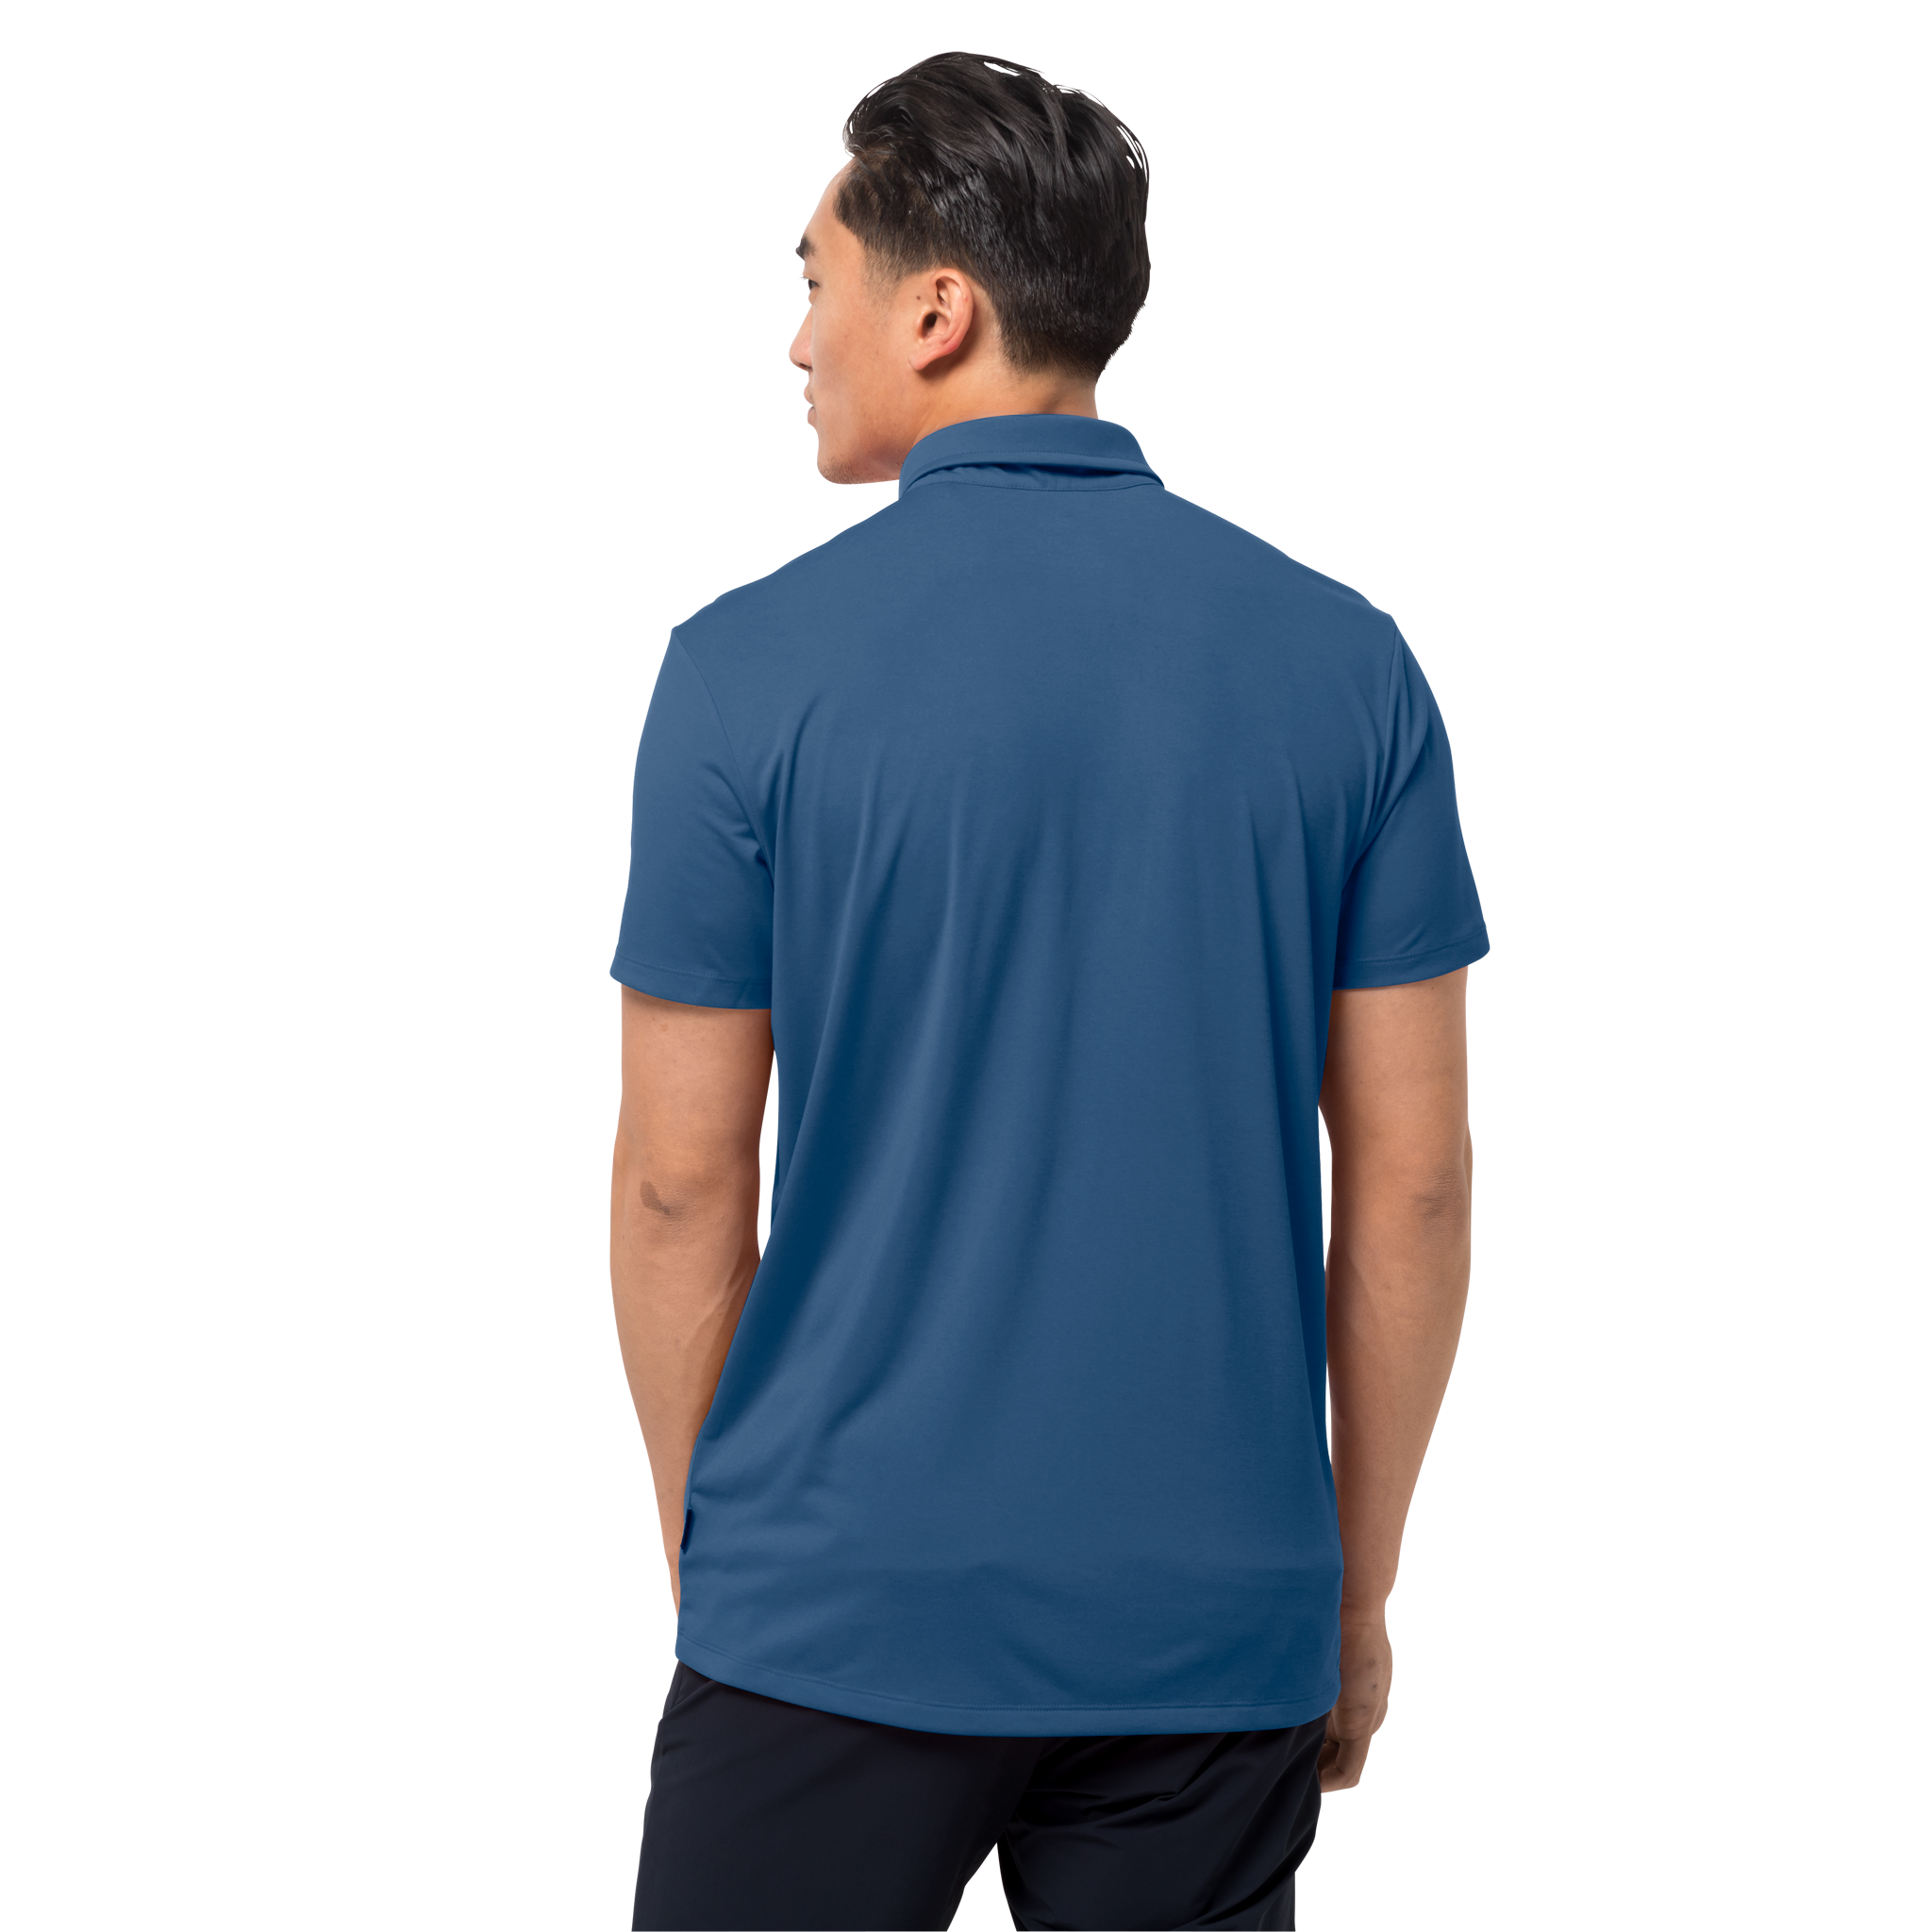 Indigo Blue Lightweight Polo Shirt Men